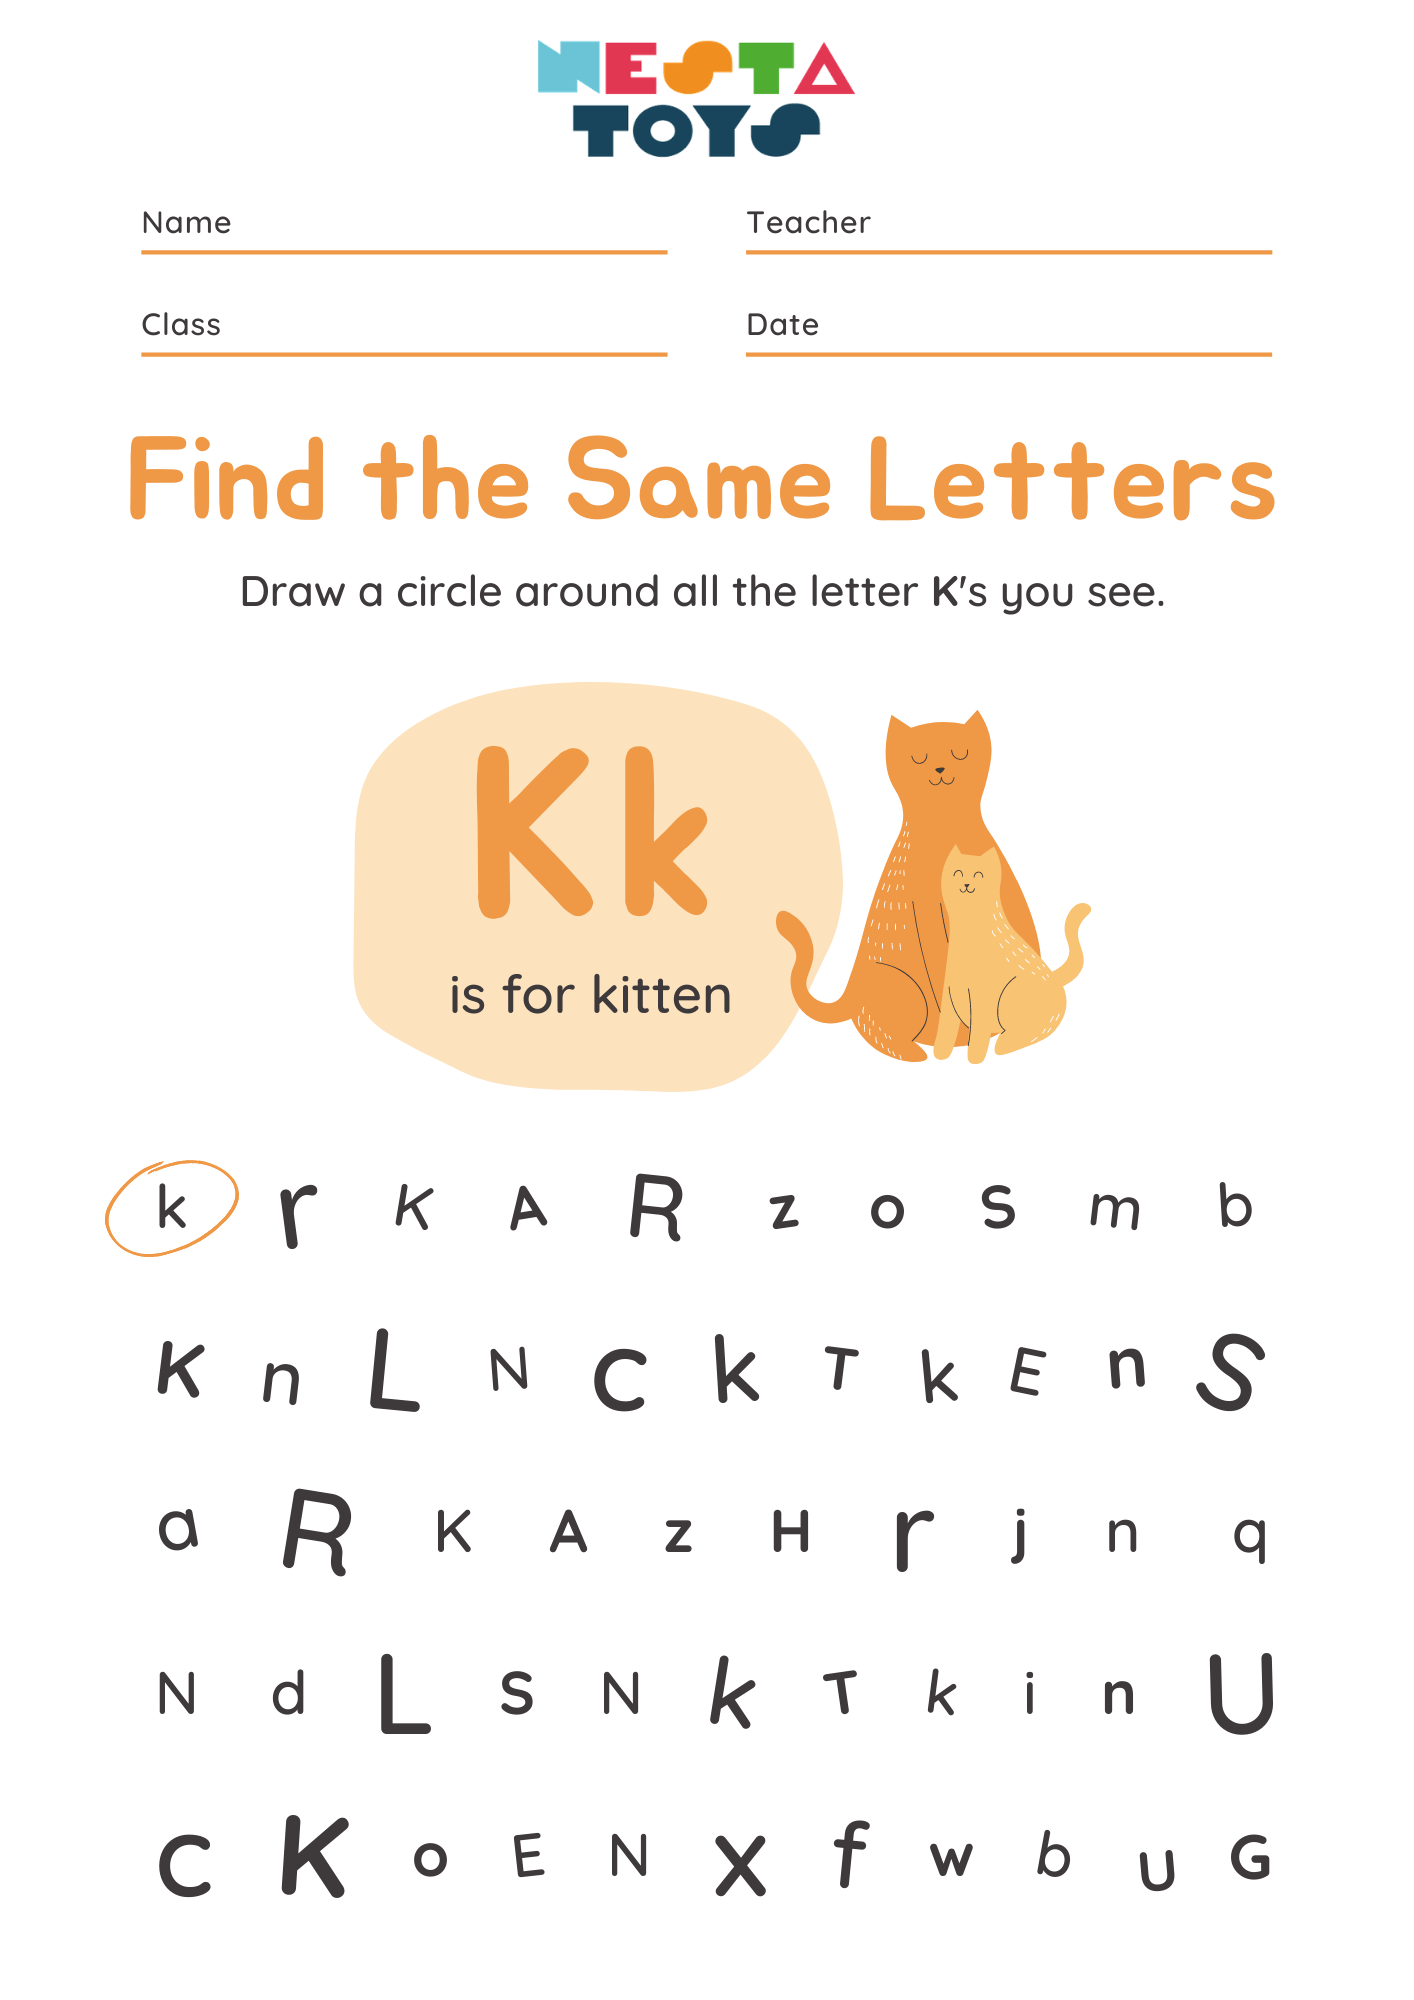 Find the same letters